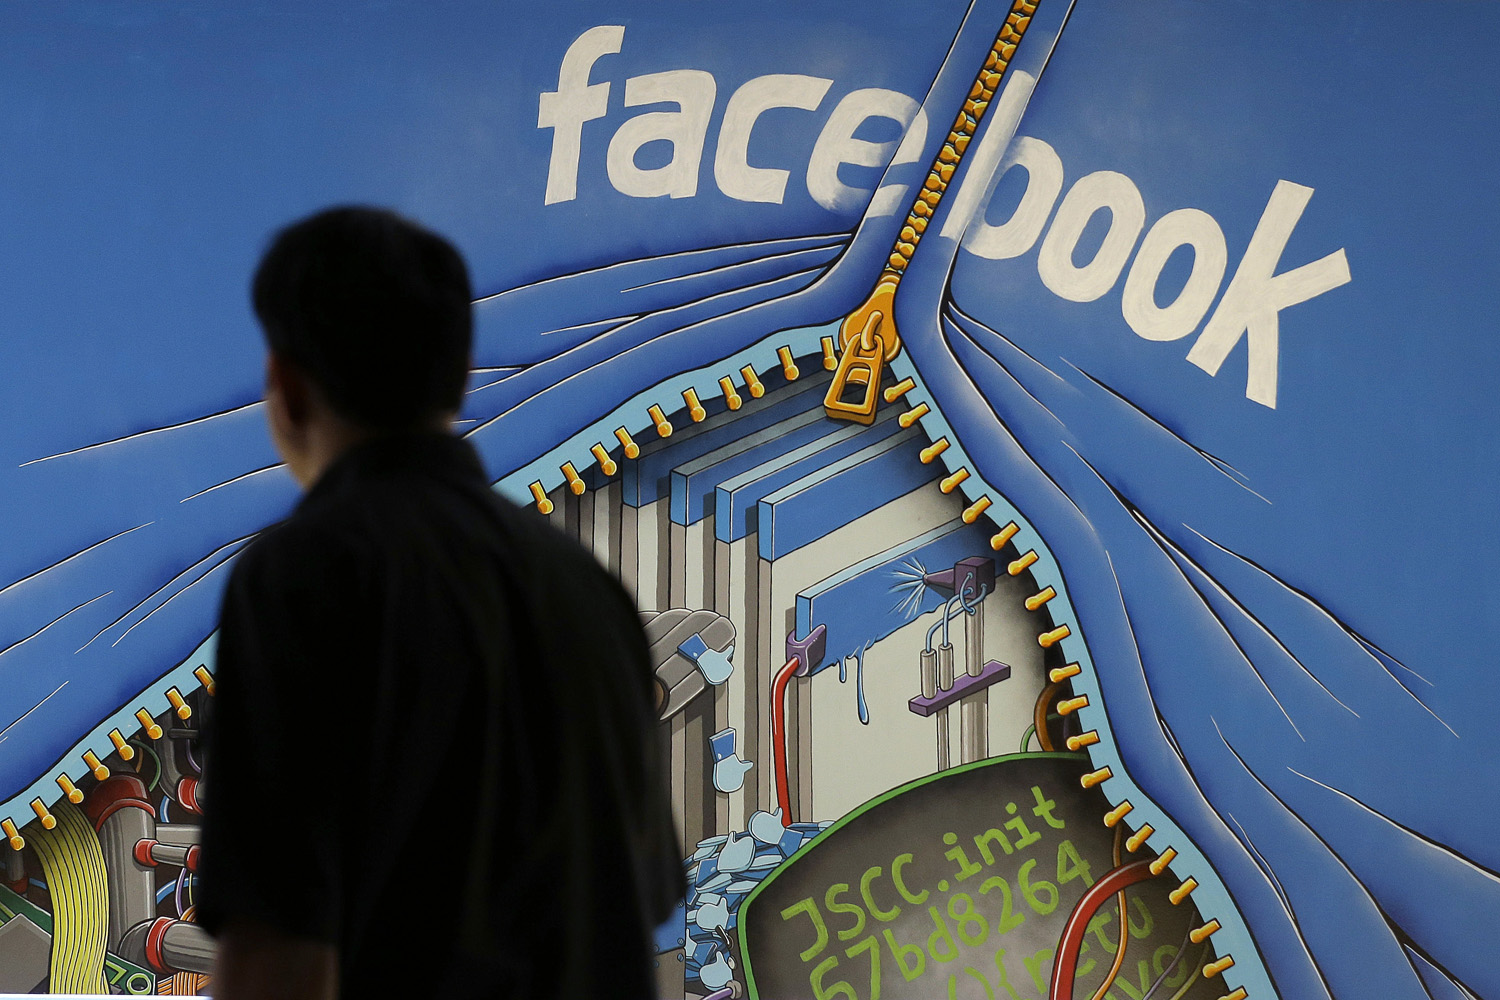 A man walks past a mural in an office on the Facebook campus in Menlo Park, California. (Jeff Chiu/AP)